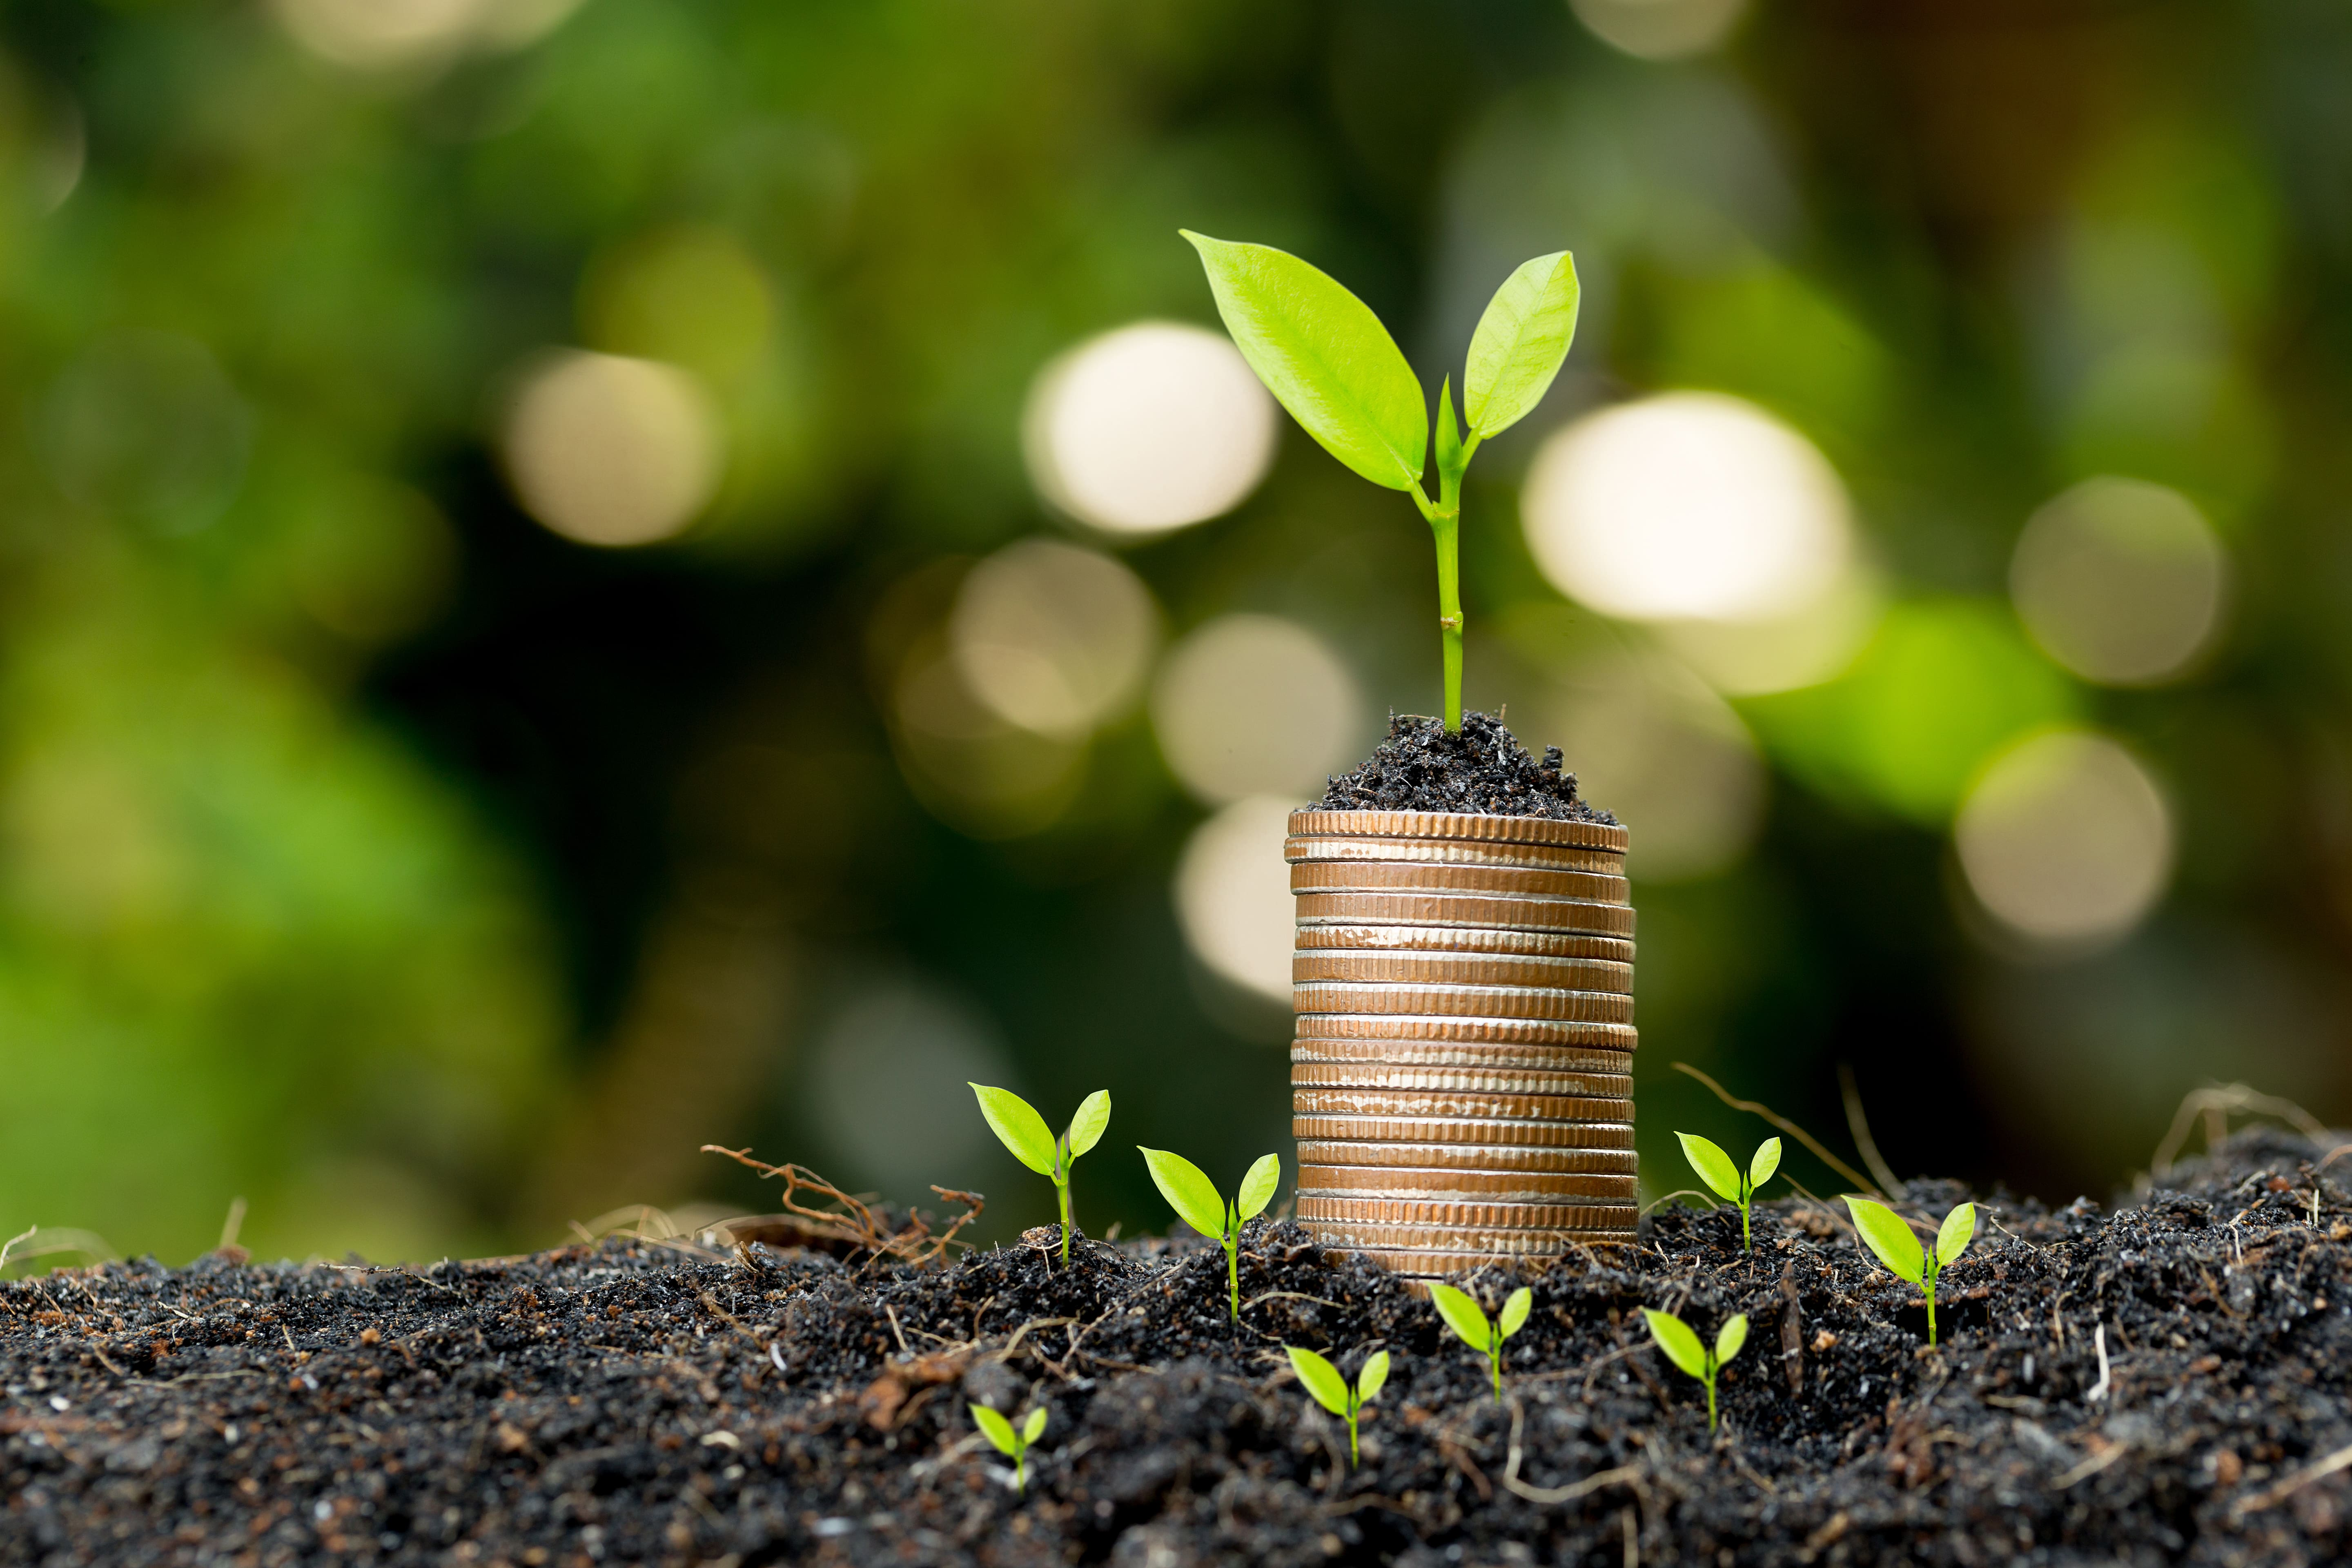 Investing showed through a plant growing